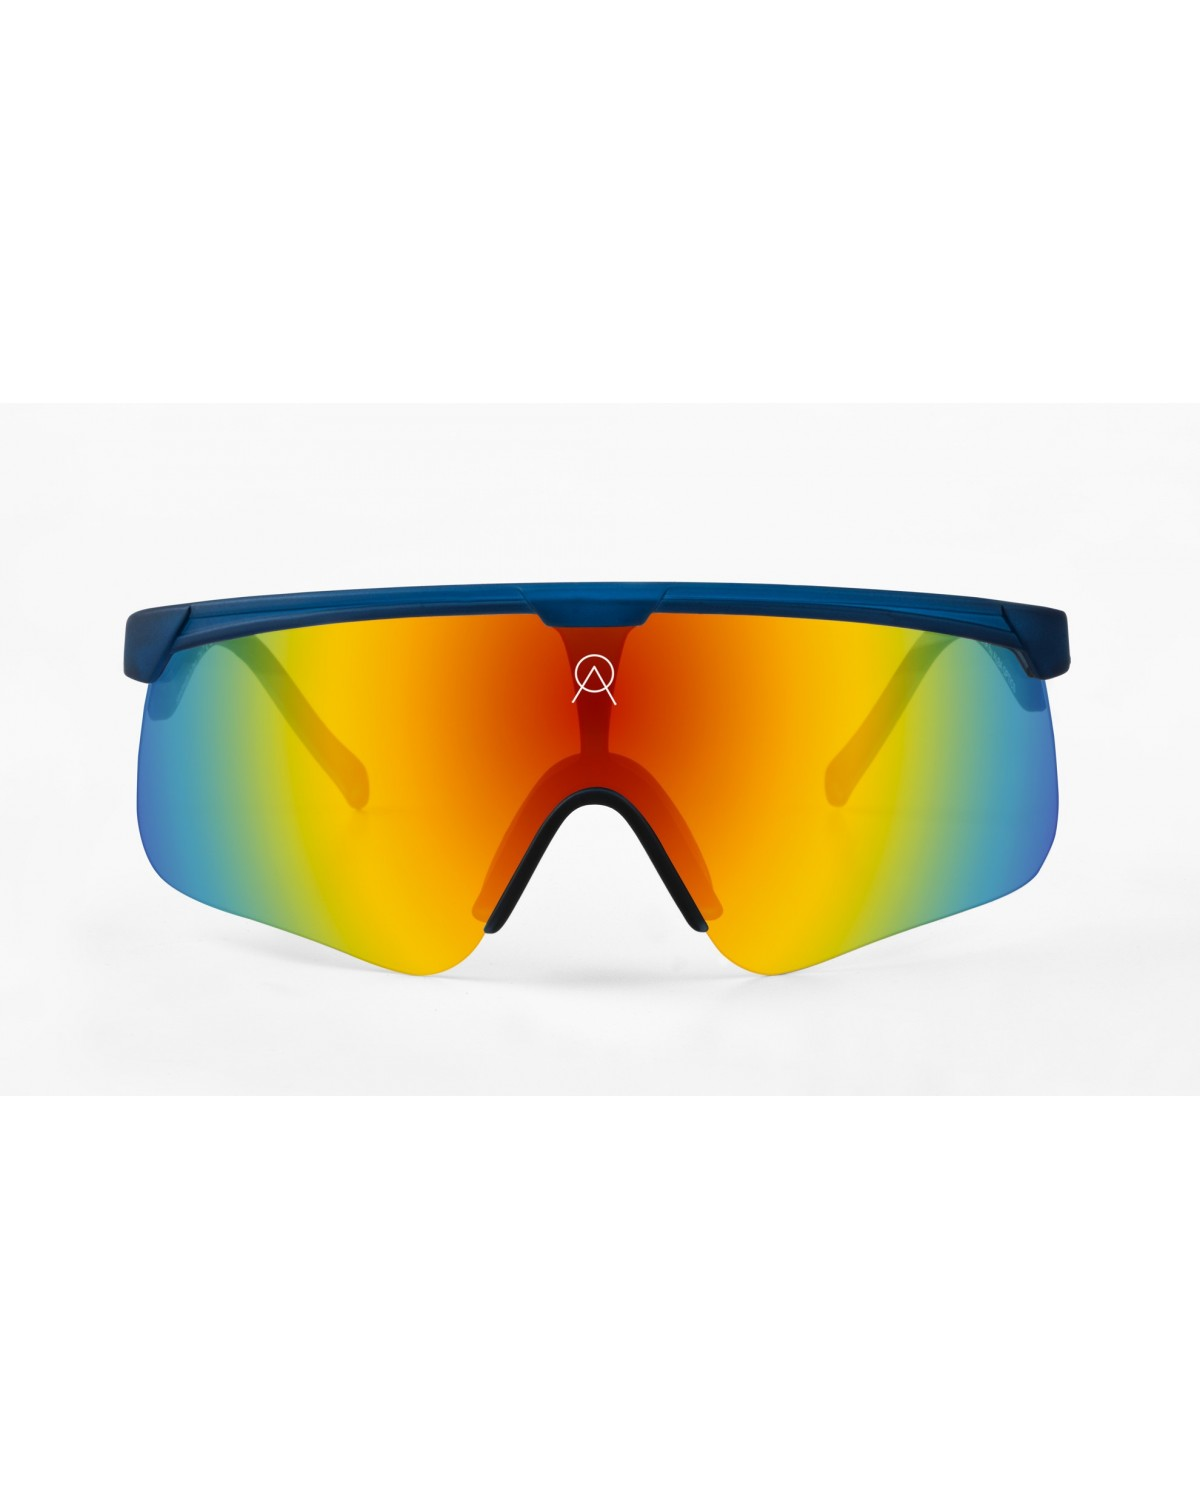 Alba Optics Delta Indigo Blue Retro Radbrille